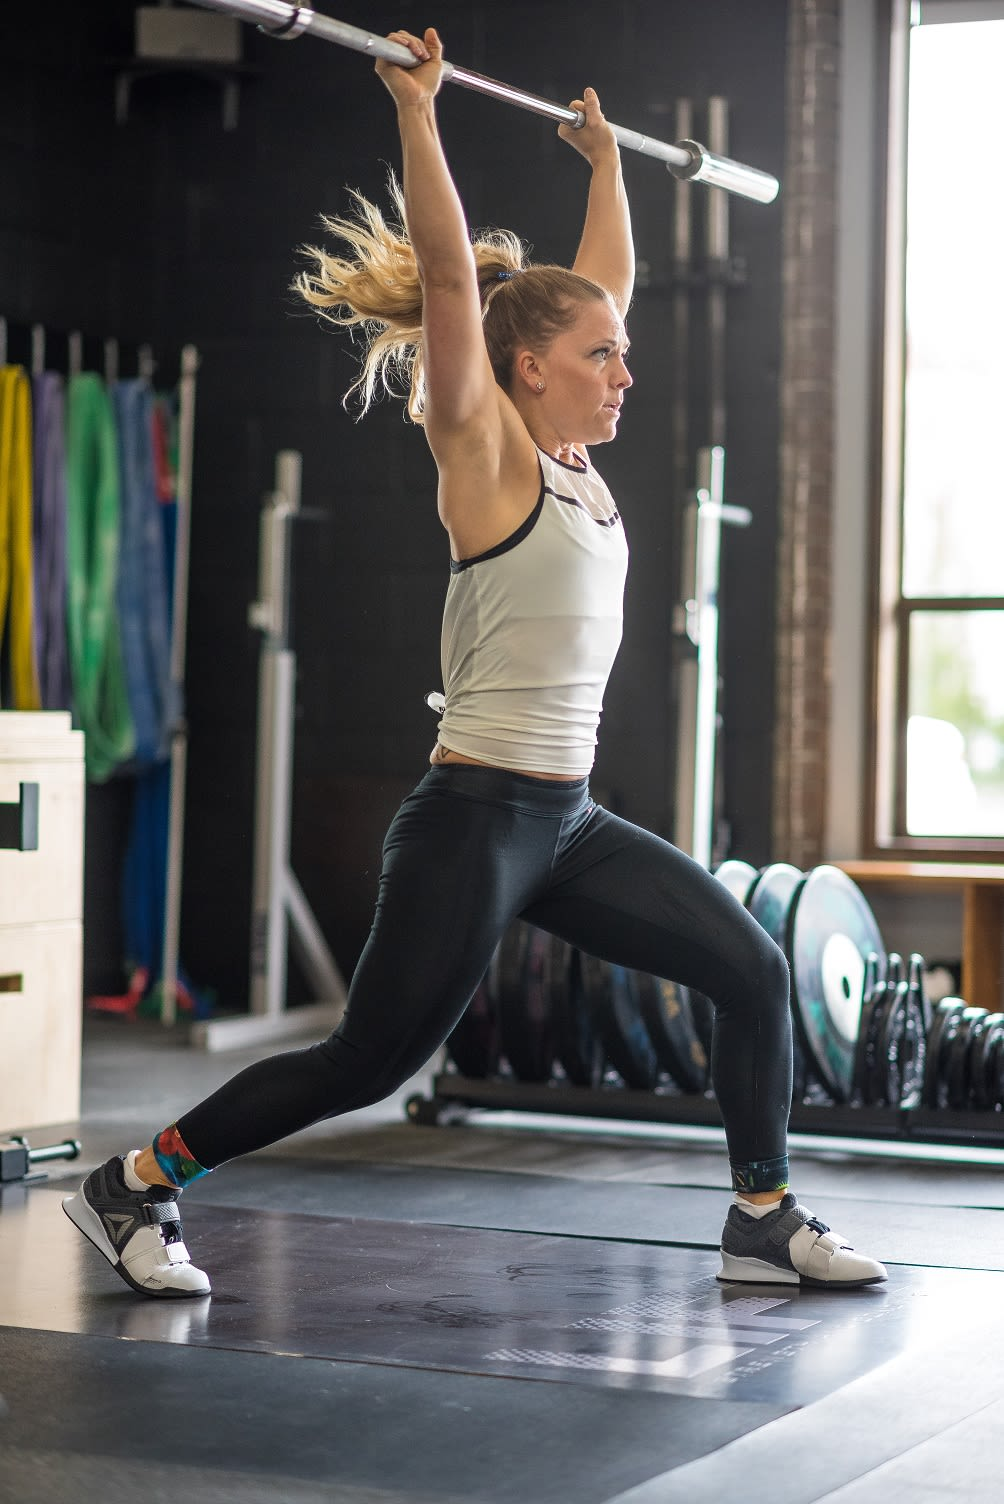 morghan-king-weightlifting-3